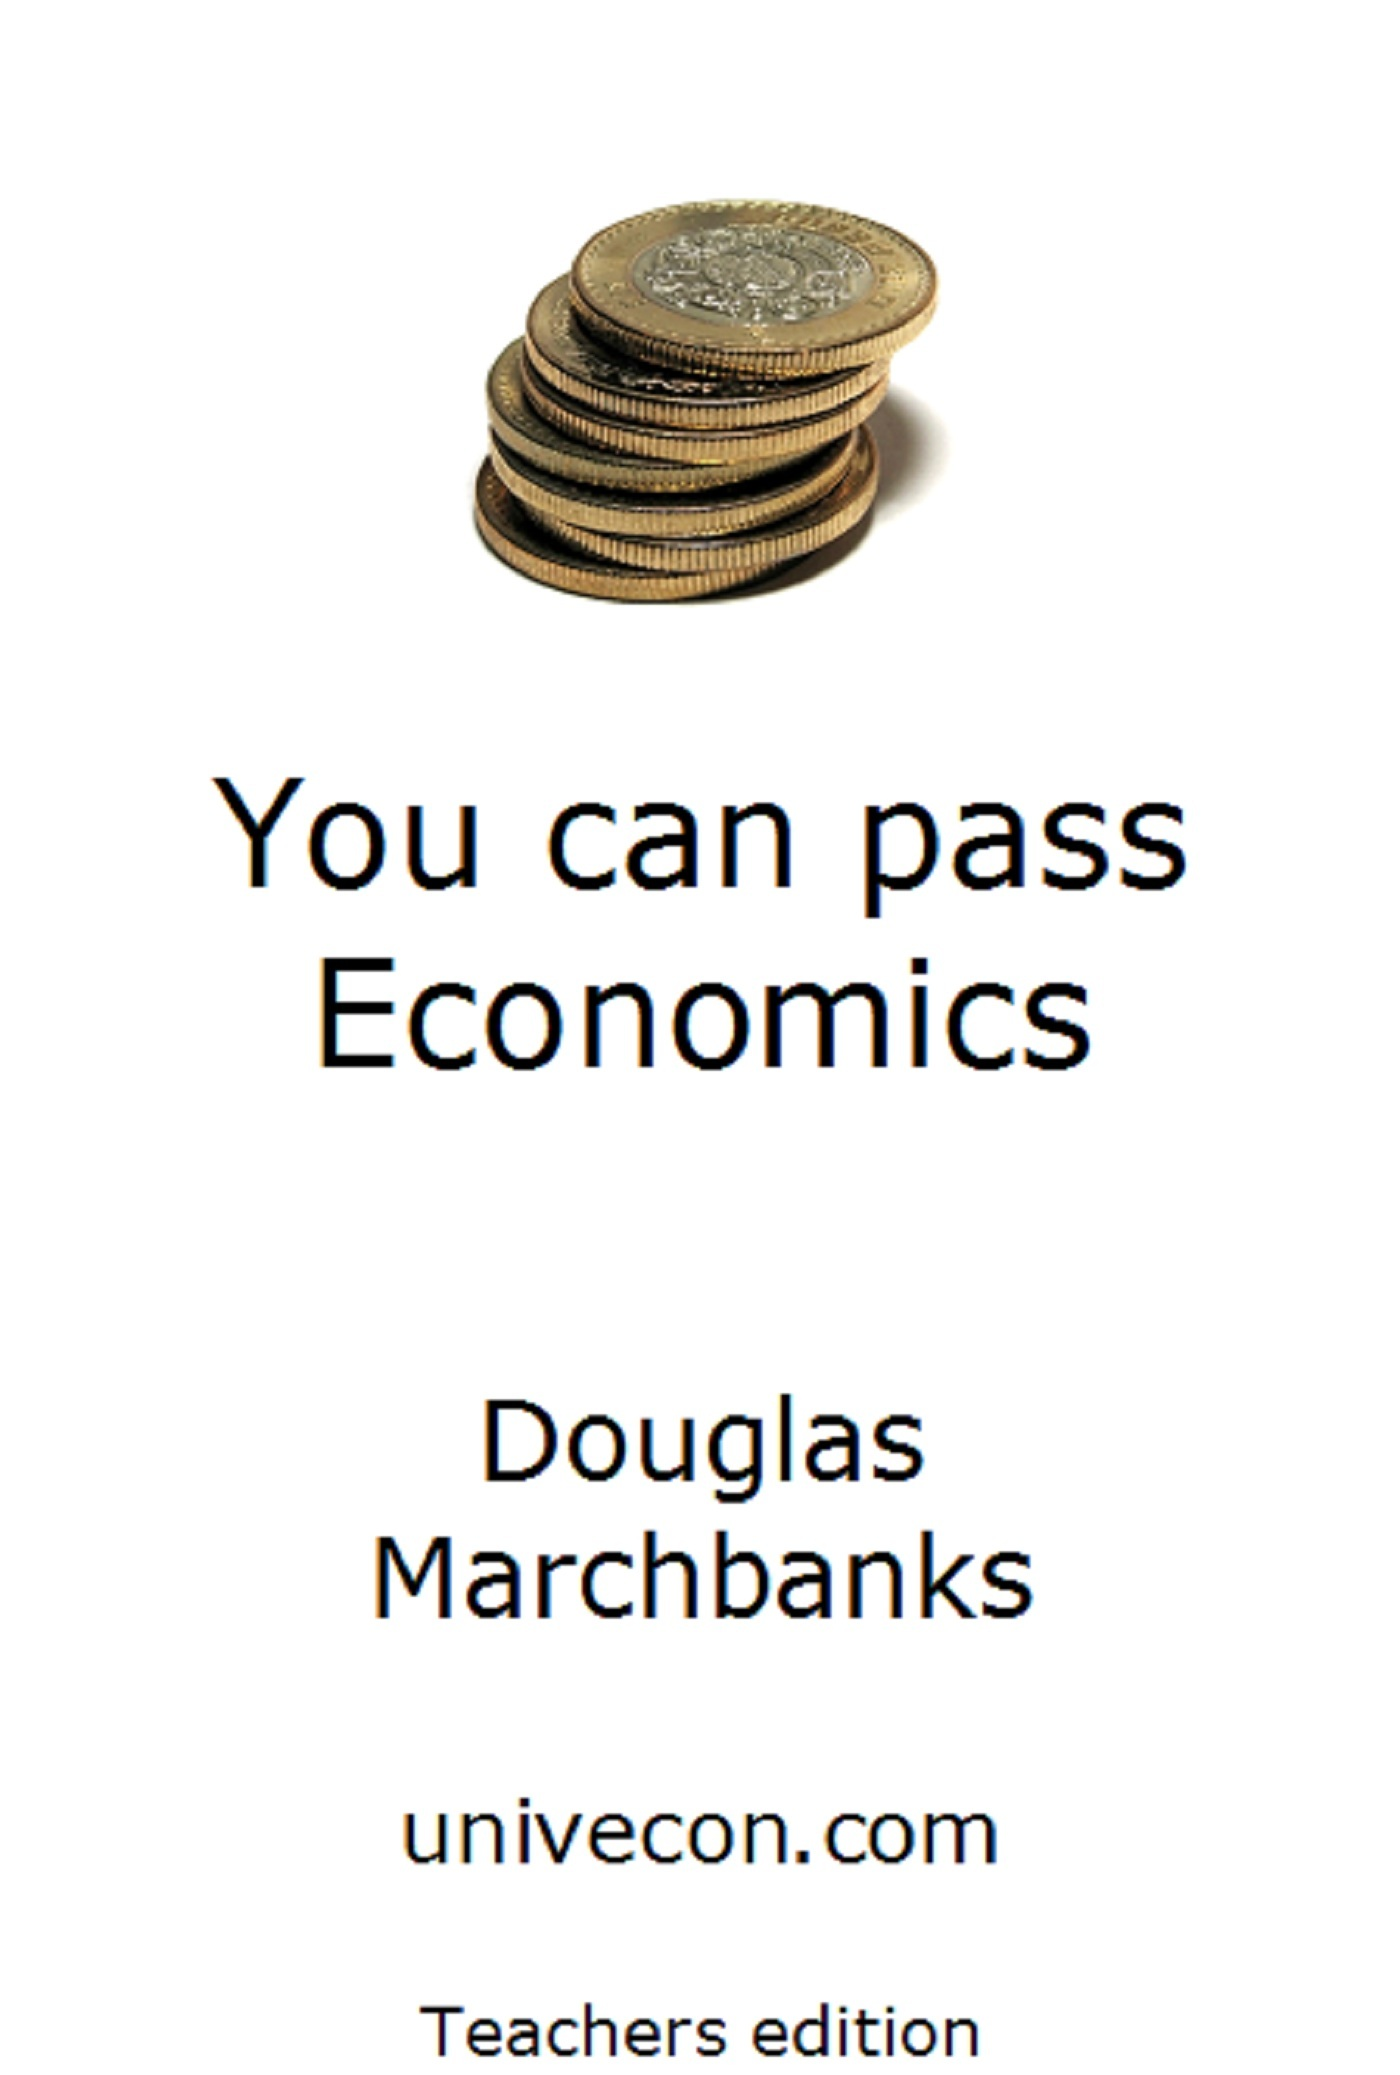 You can pass Economics teachers version